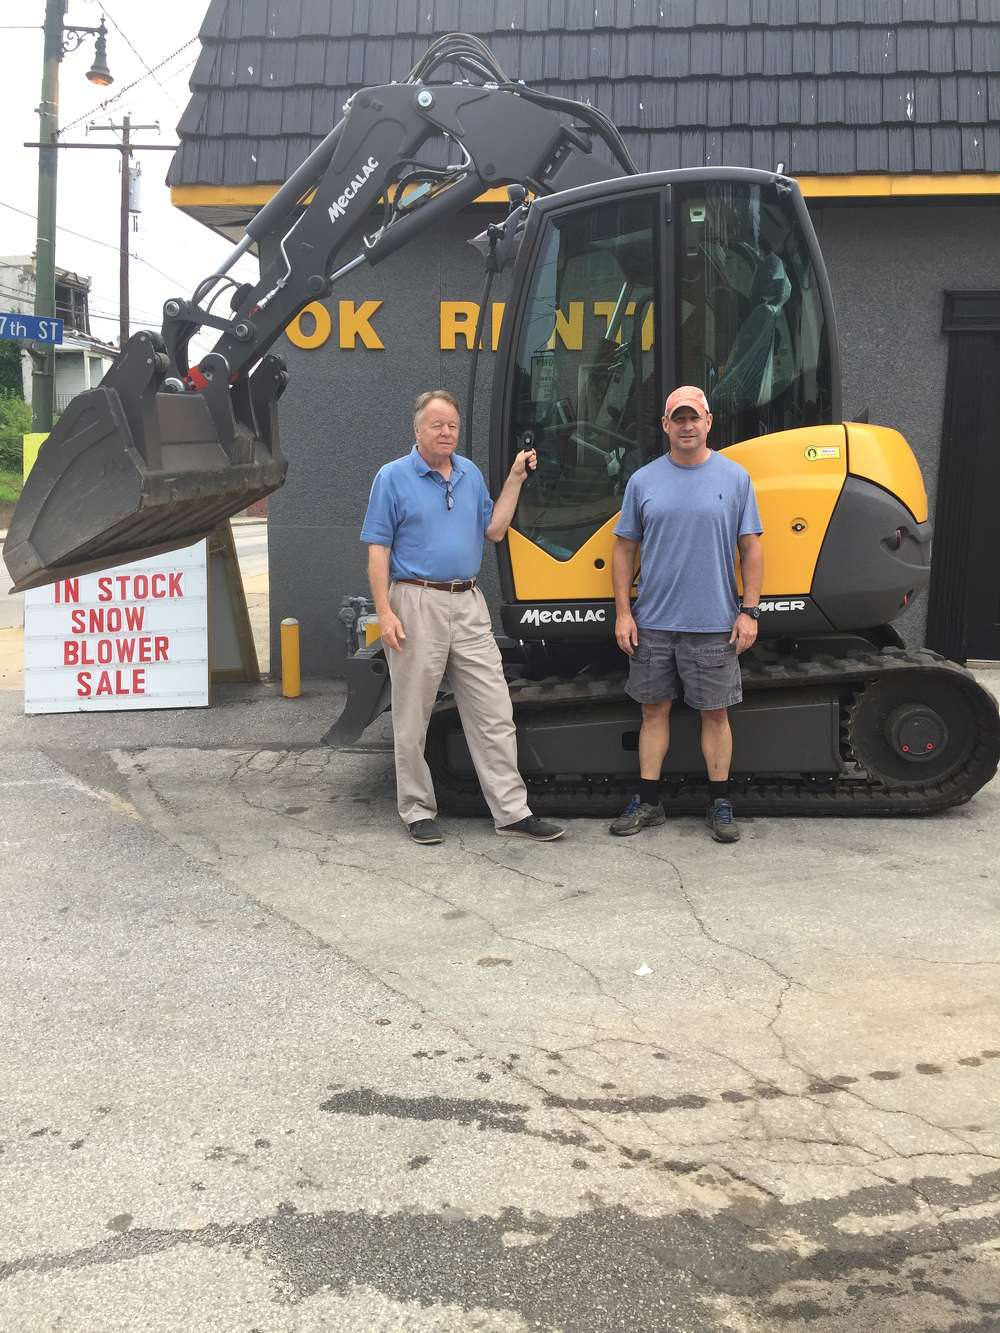 John McCusker (L), Mecalac machine specialist, and Ron Scoleri Jr., general manager, both of OK Rental.